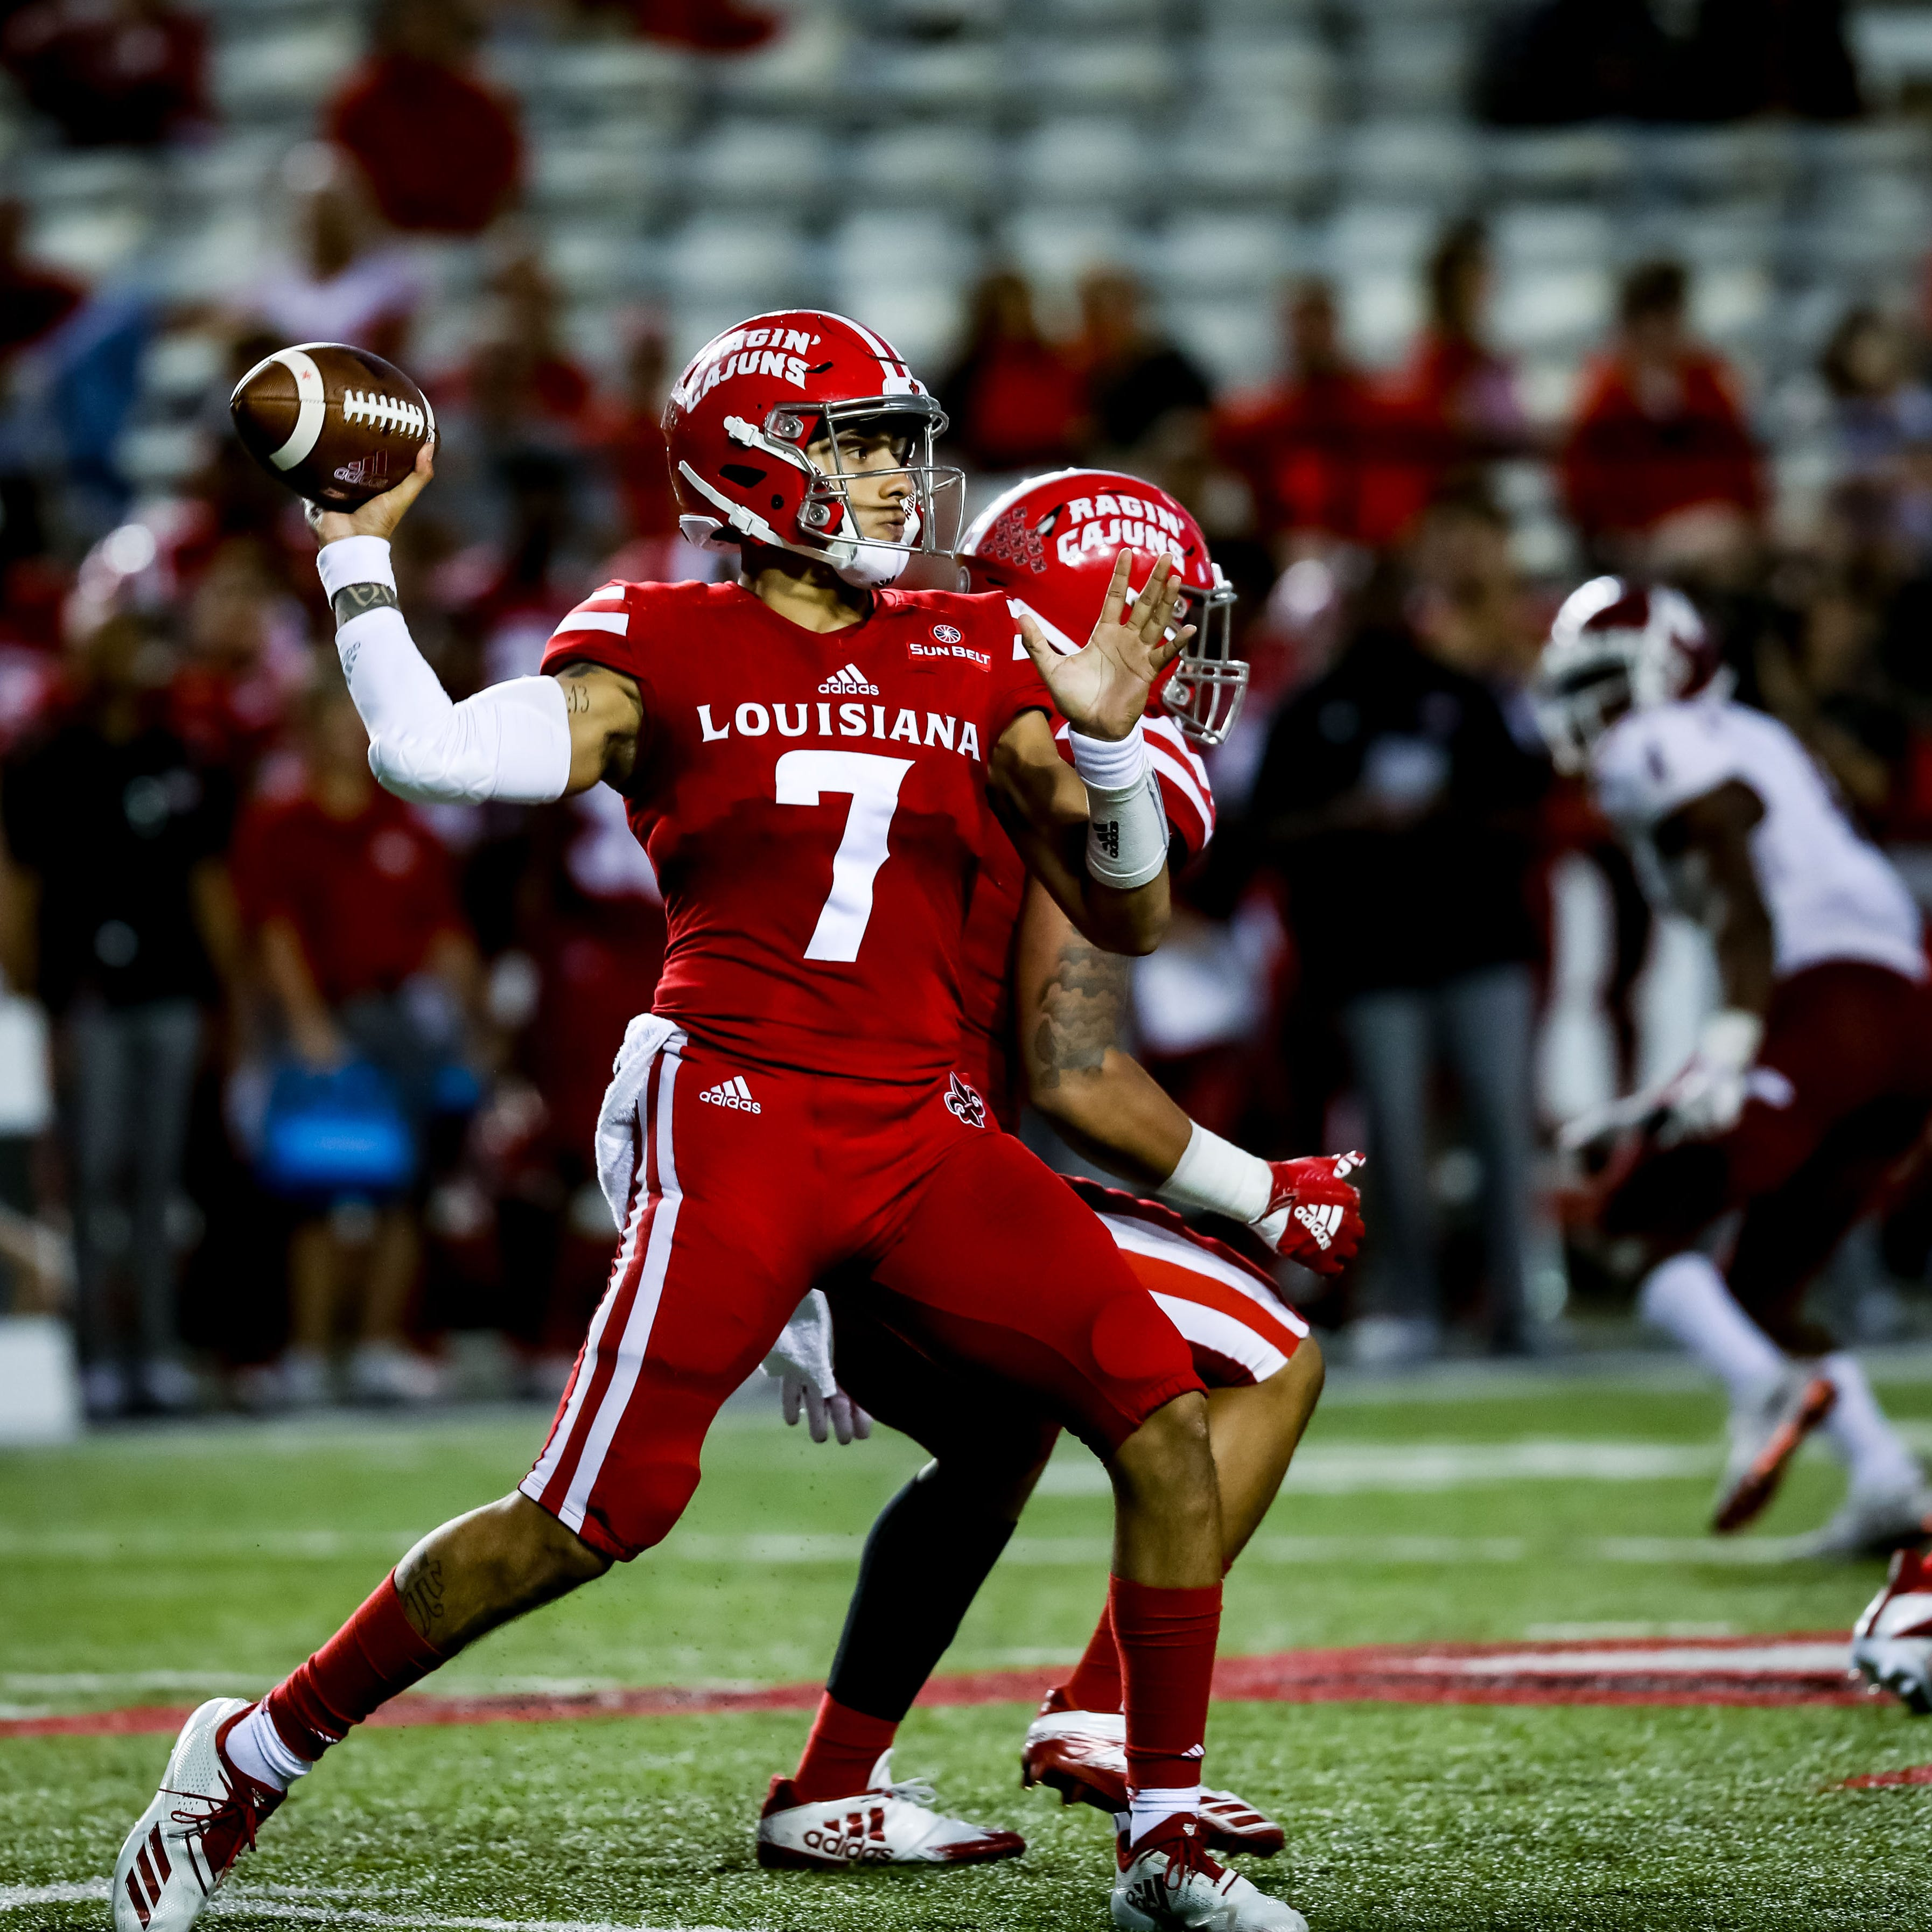 Taking time to appreciate Cajuns quarterback Nunez